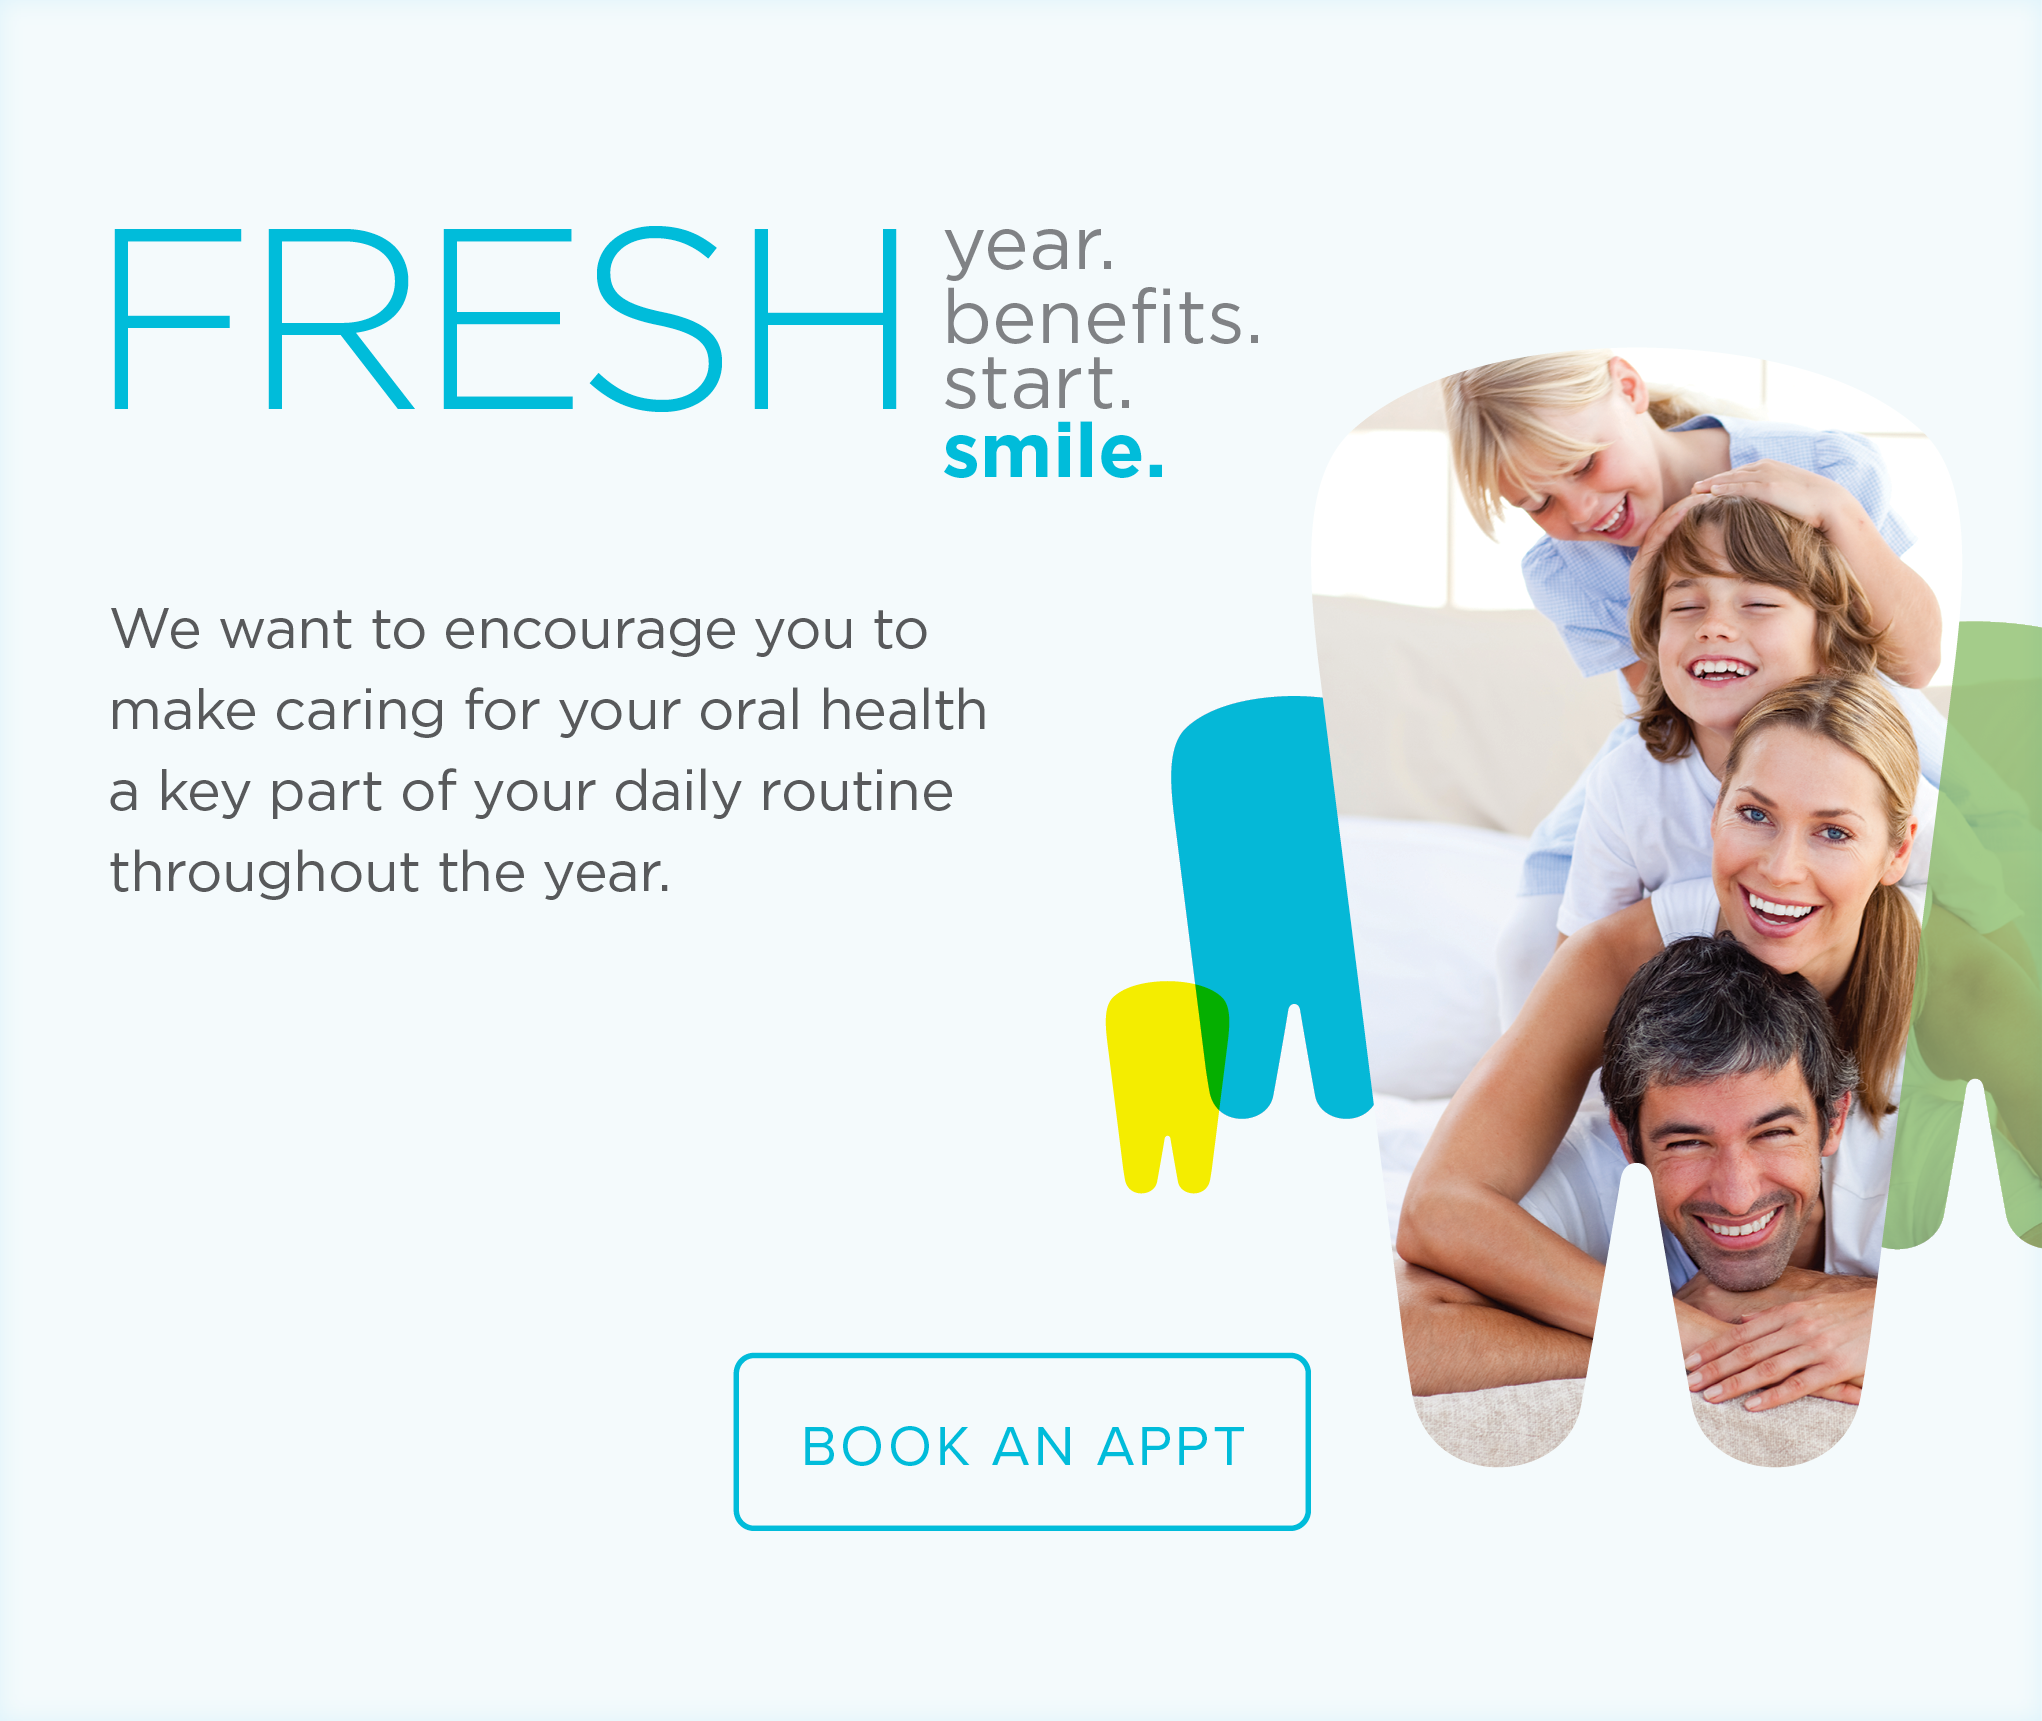 Snellville Smiles Dentistry - Make the Most of Your Benefits